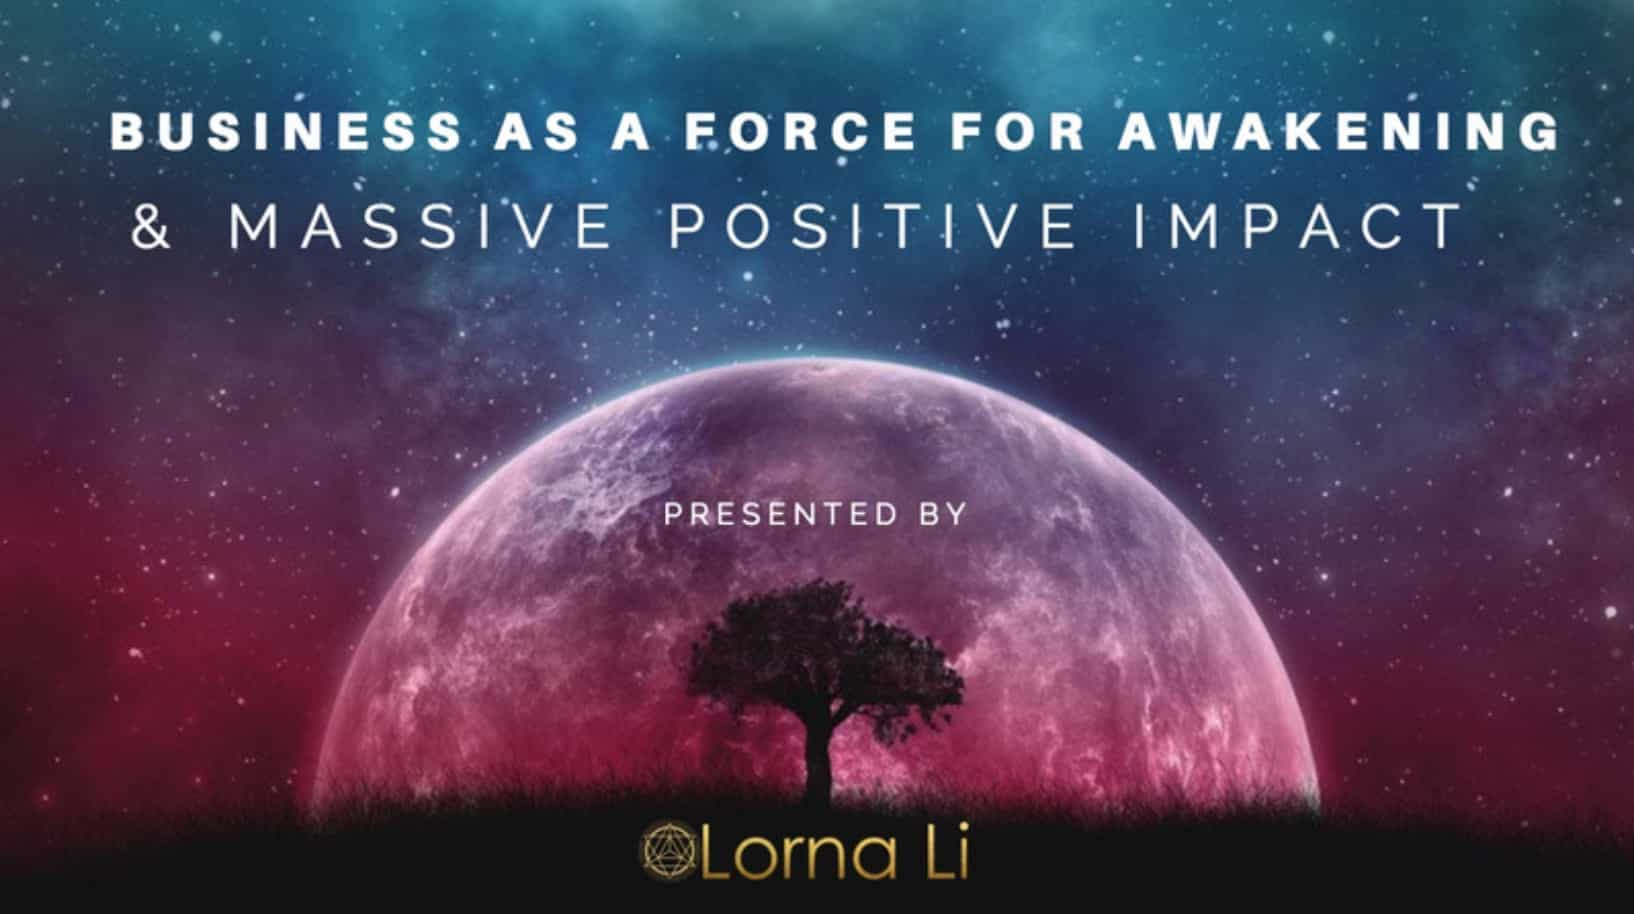 Business as a Force for Awakening & Massive Positive Impact